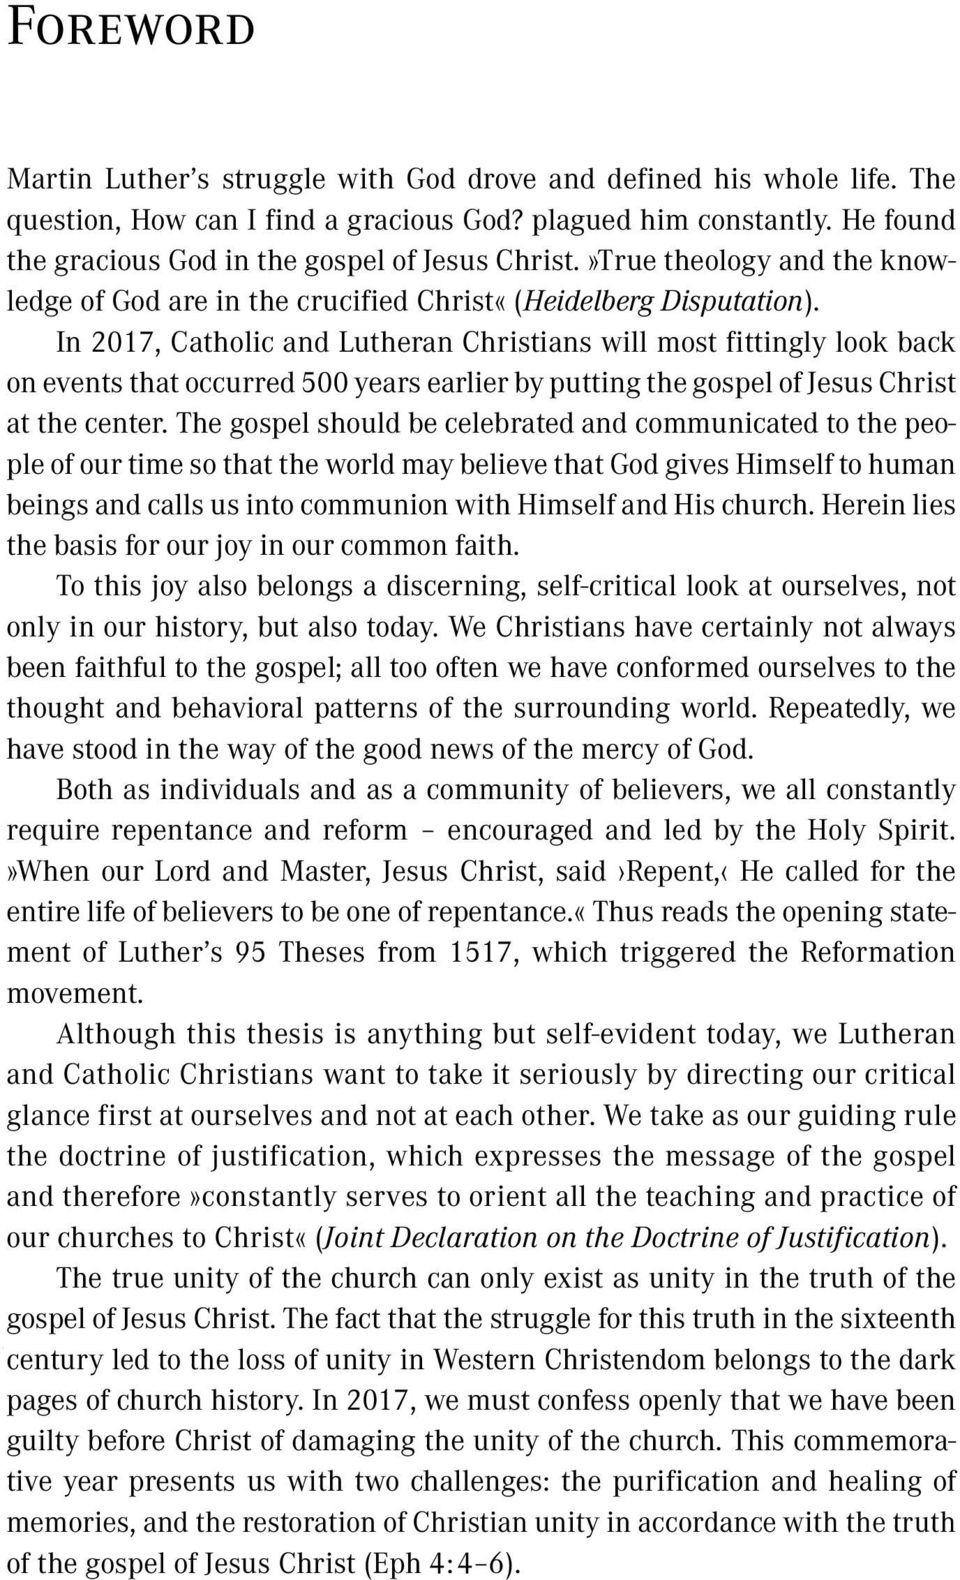 In 2017, Catholic and Lutheran Christians will most fittingly look back on events that occurred 500 years earlier by putting the gospel of Jesus Christ at the center.